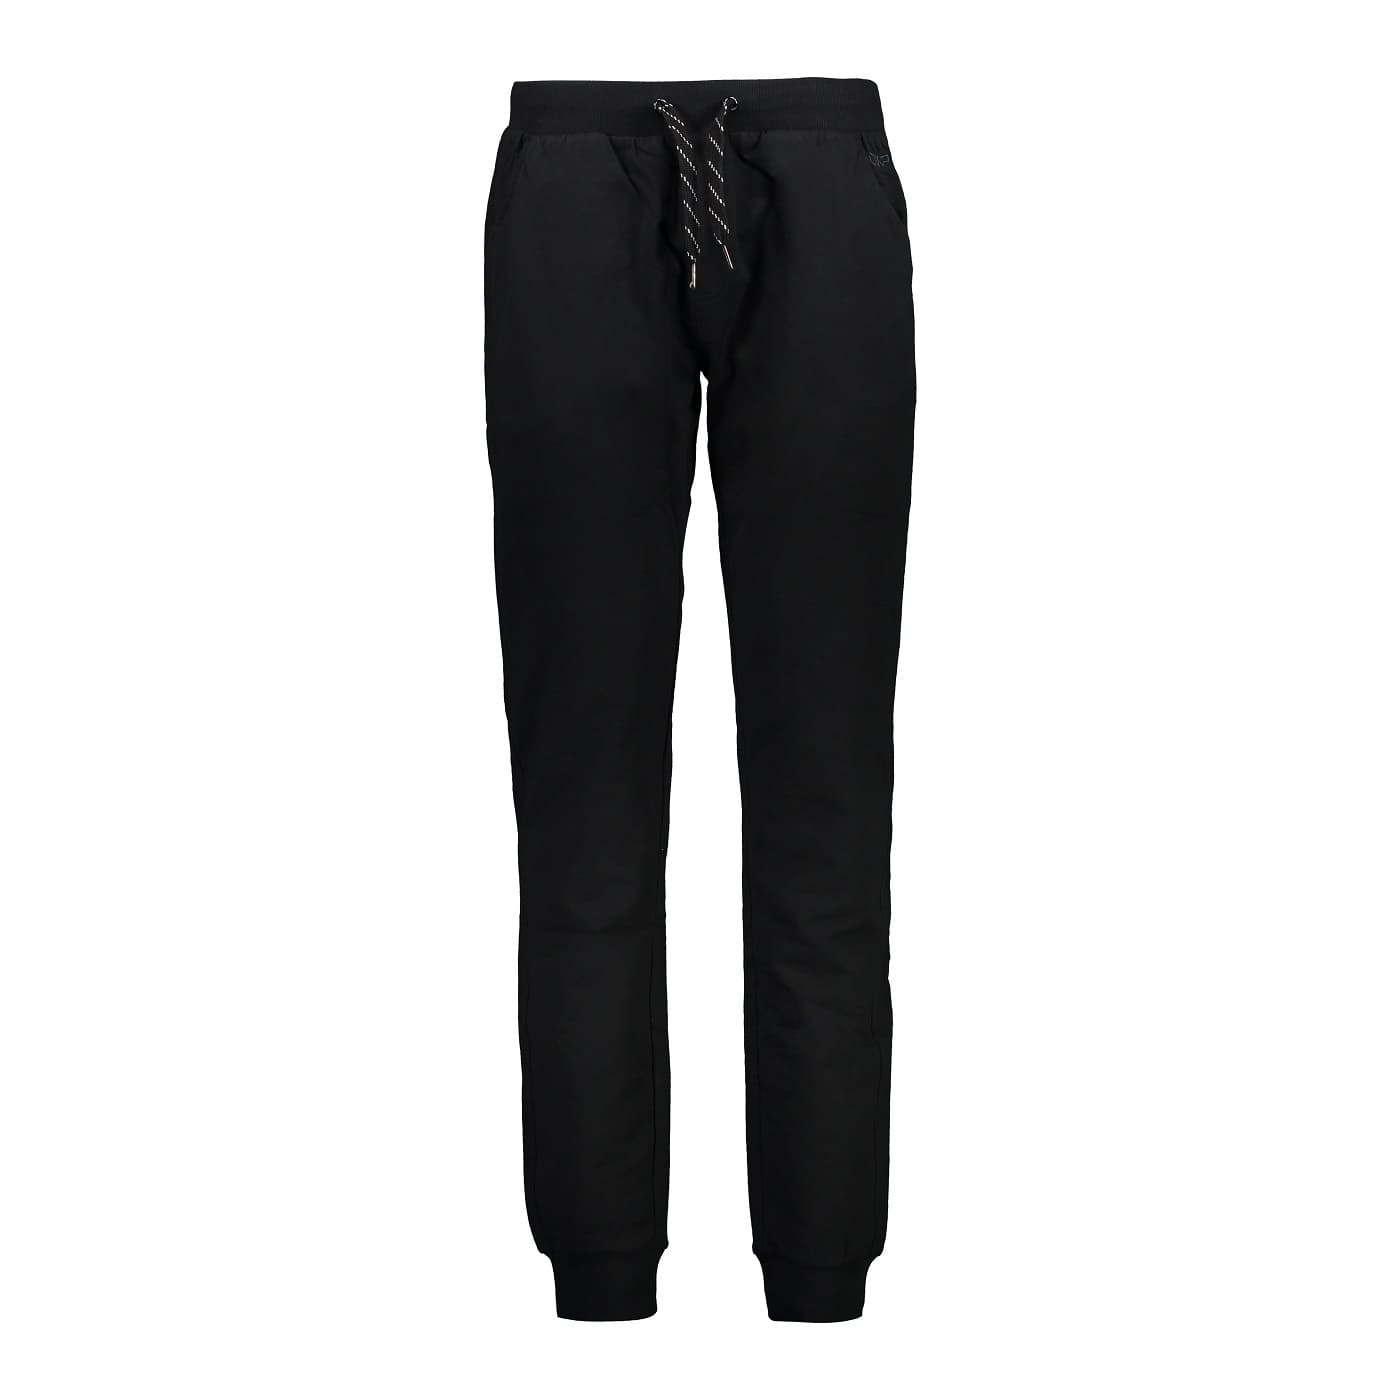 CMP MAN LONG PANT NERO - 50